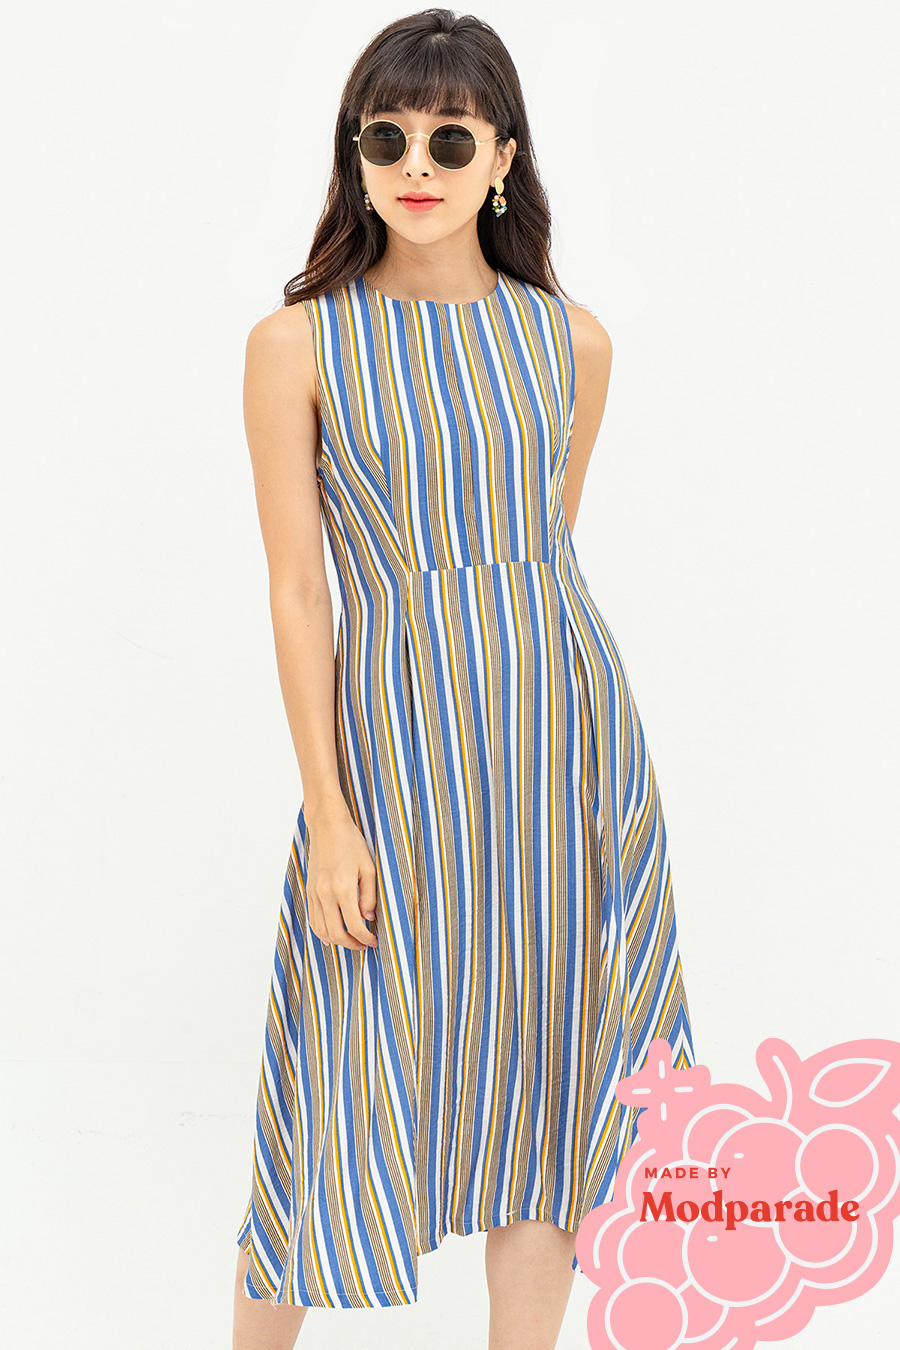 DELLARTE DRESS - HALE STRIPE [BY MODPARADE]